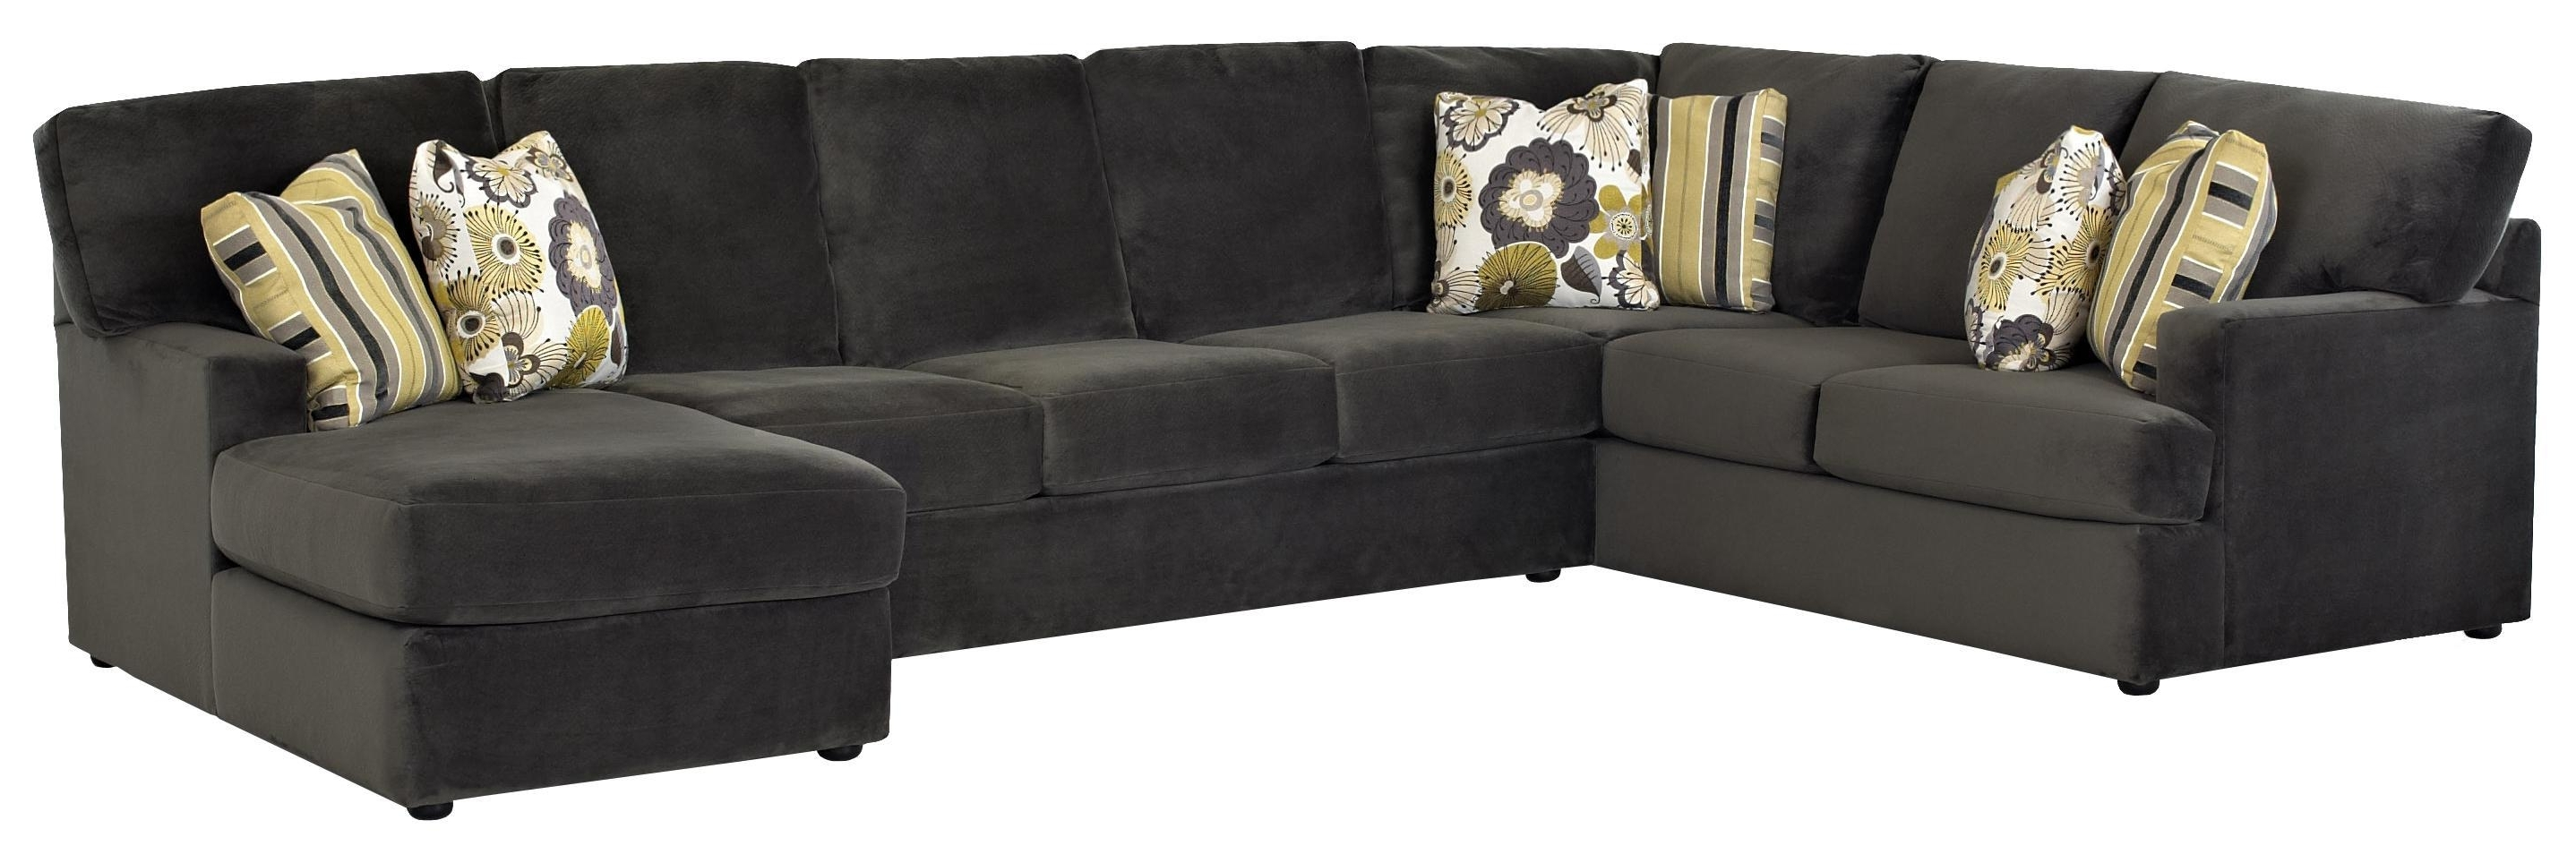 Stunning The Dump Furniture Sectional Sofa For Home Pic Haynes With Regard To 2017 Virginia Beach Sectional Sofas (View 7 of 15)